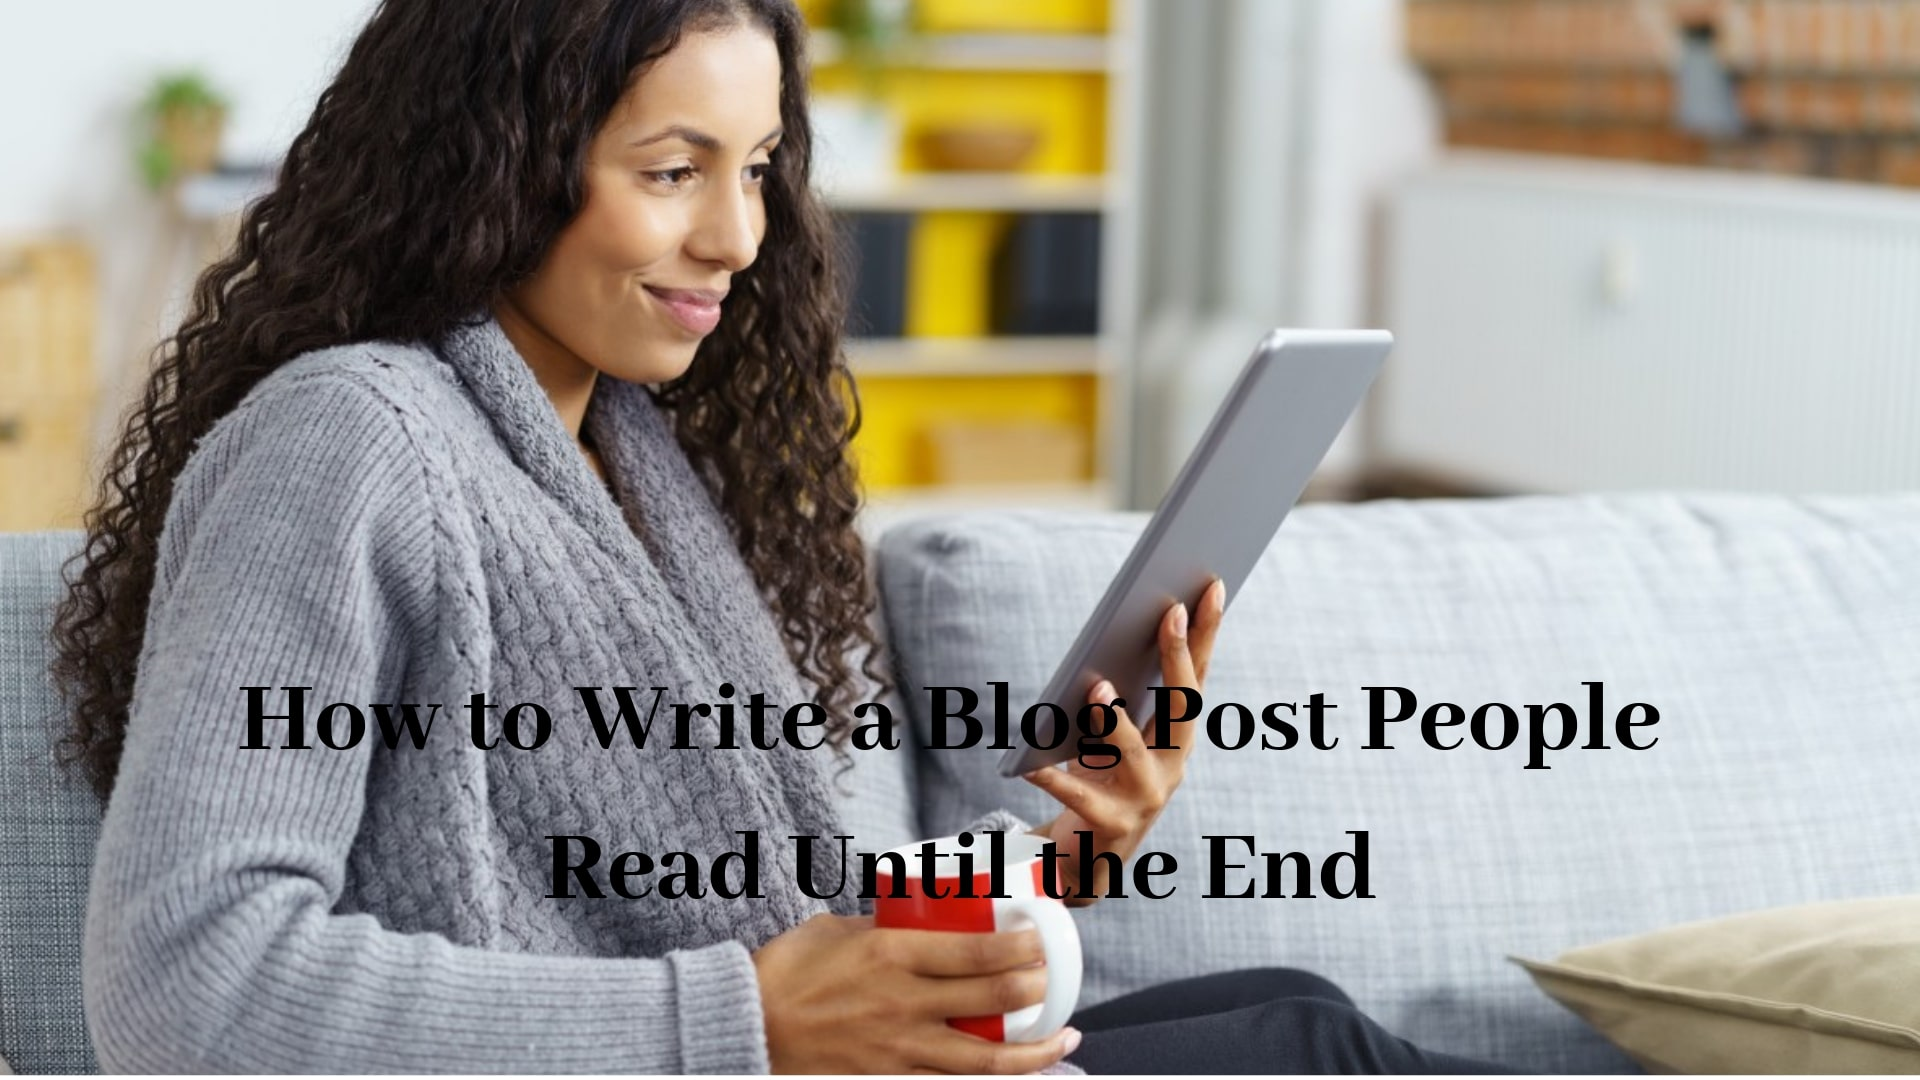 How-to-Write-a-Blog-Post-People-Read-Until-the-End